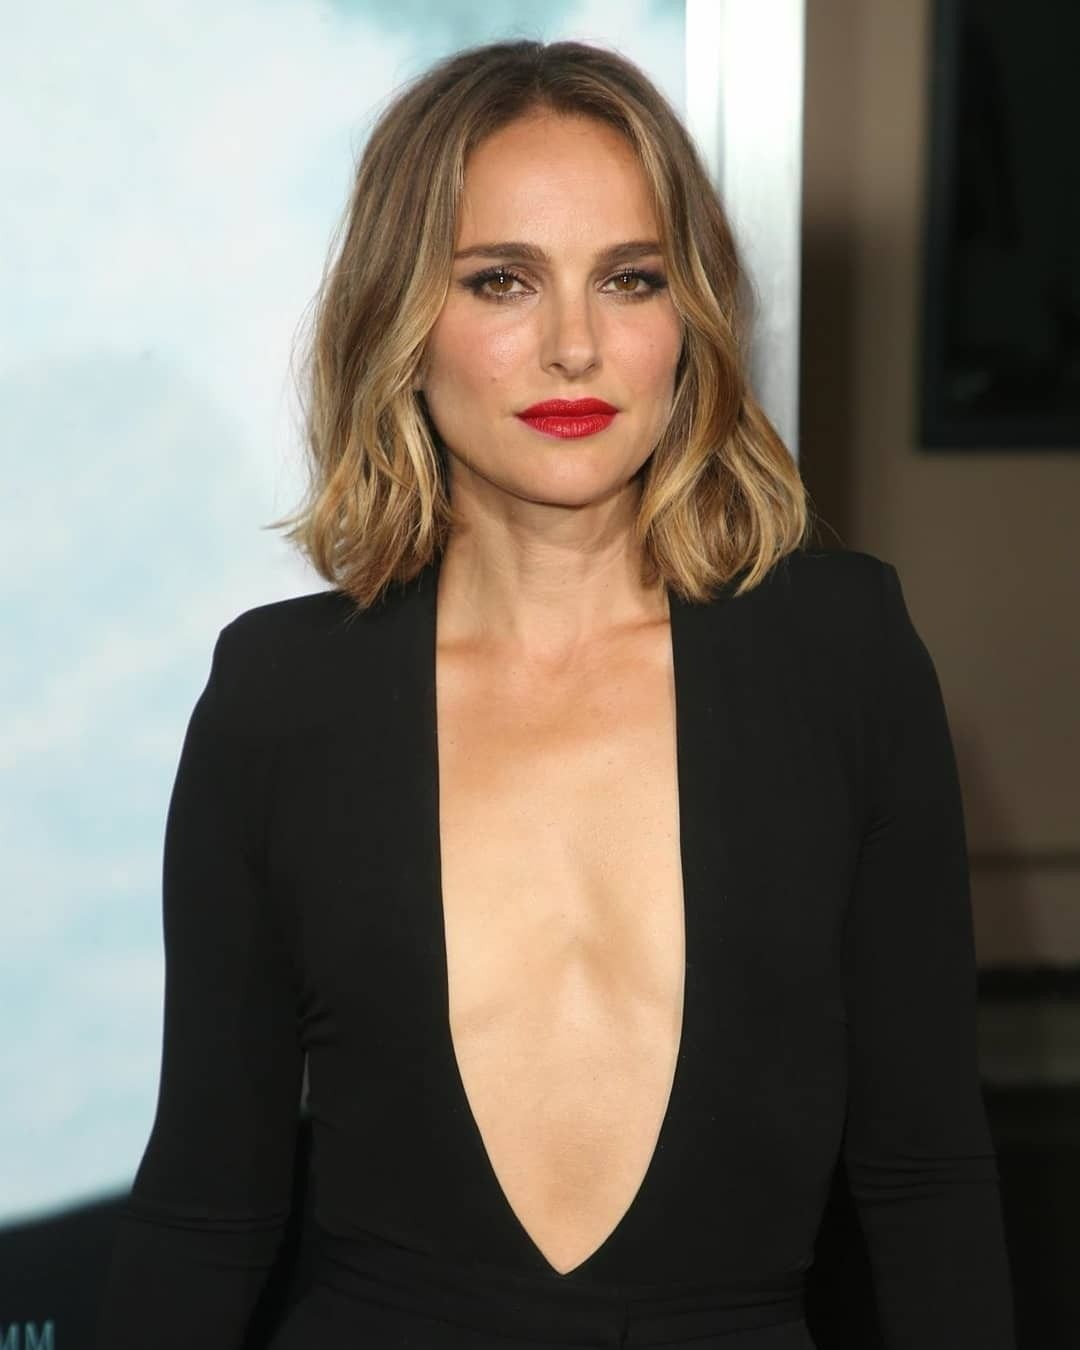 Natalie Portmans Plunging Bodysuit and Miniskirt Outfit